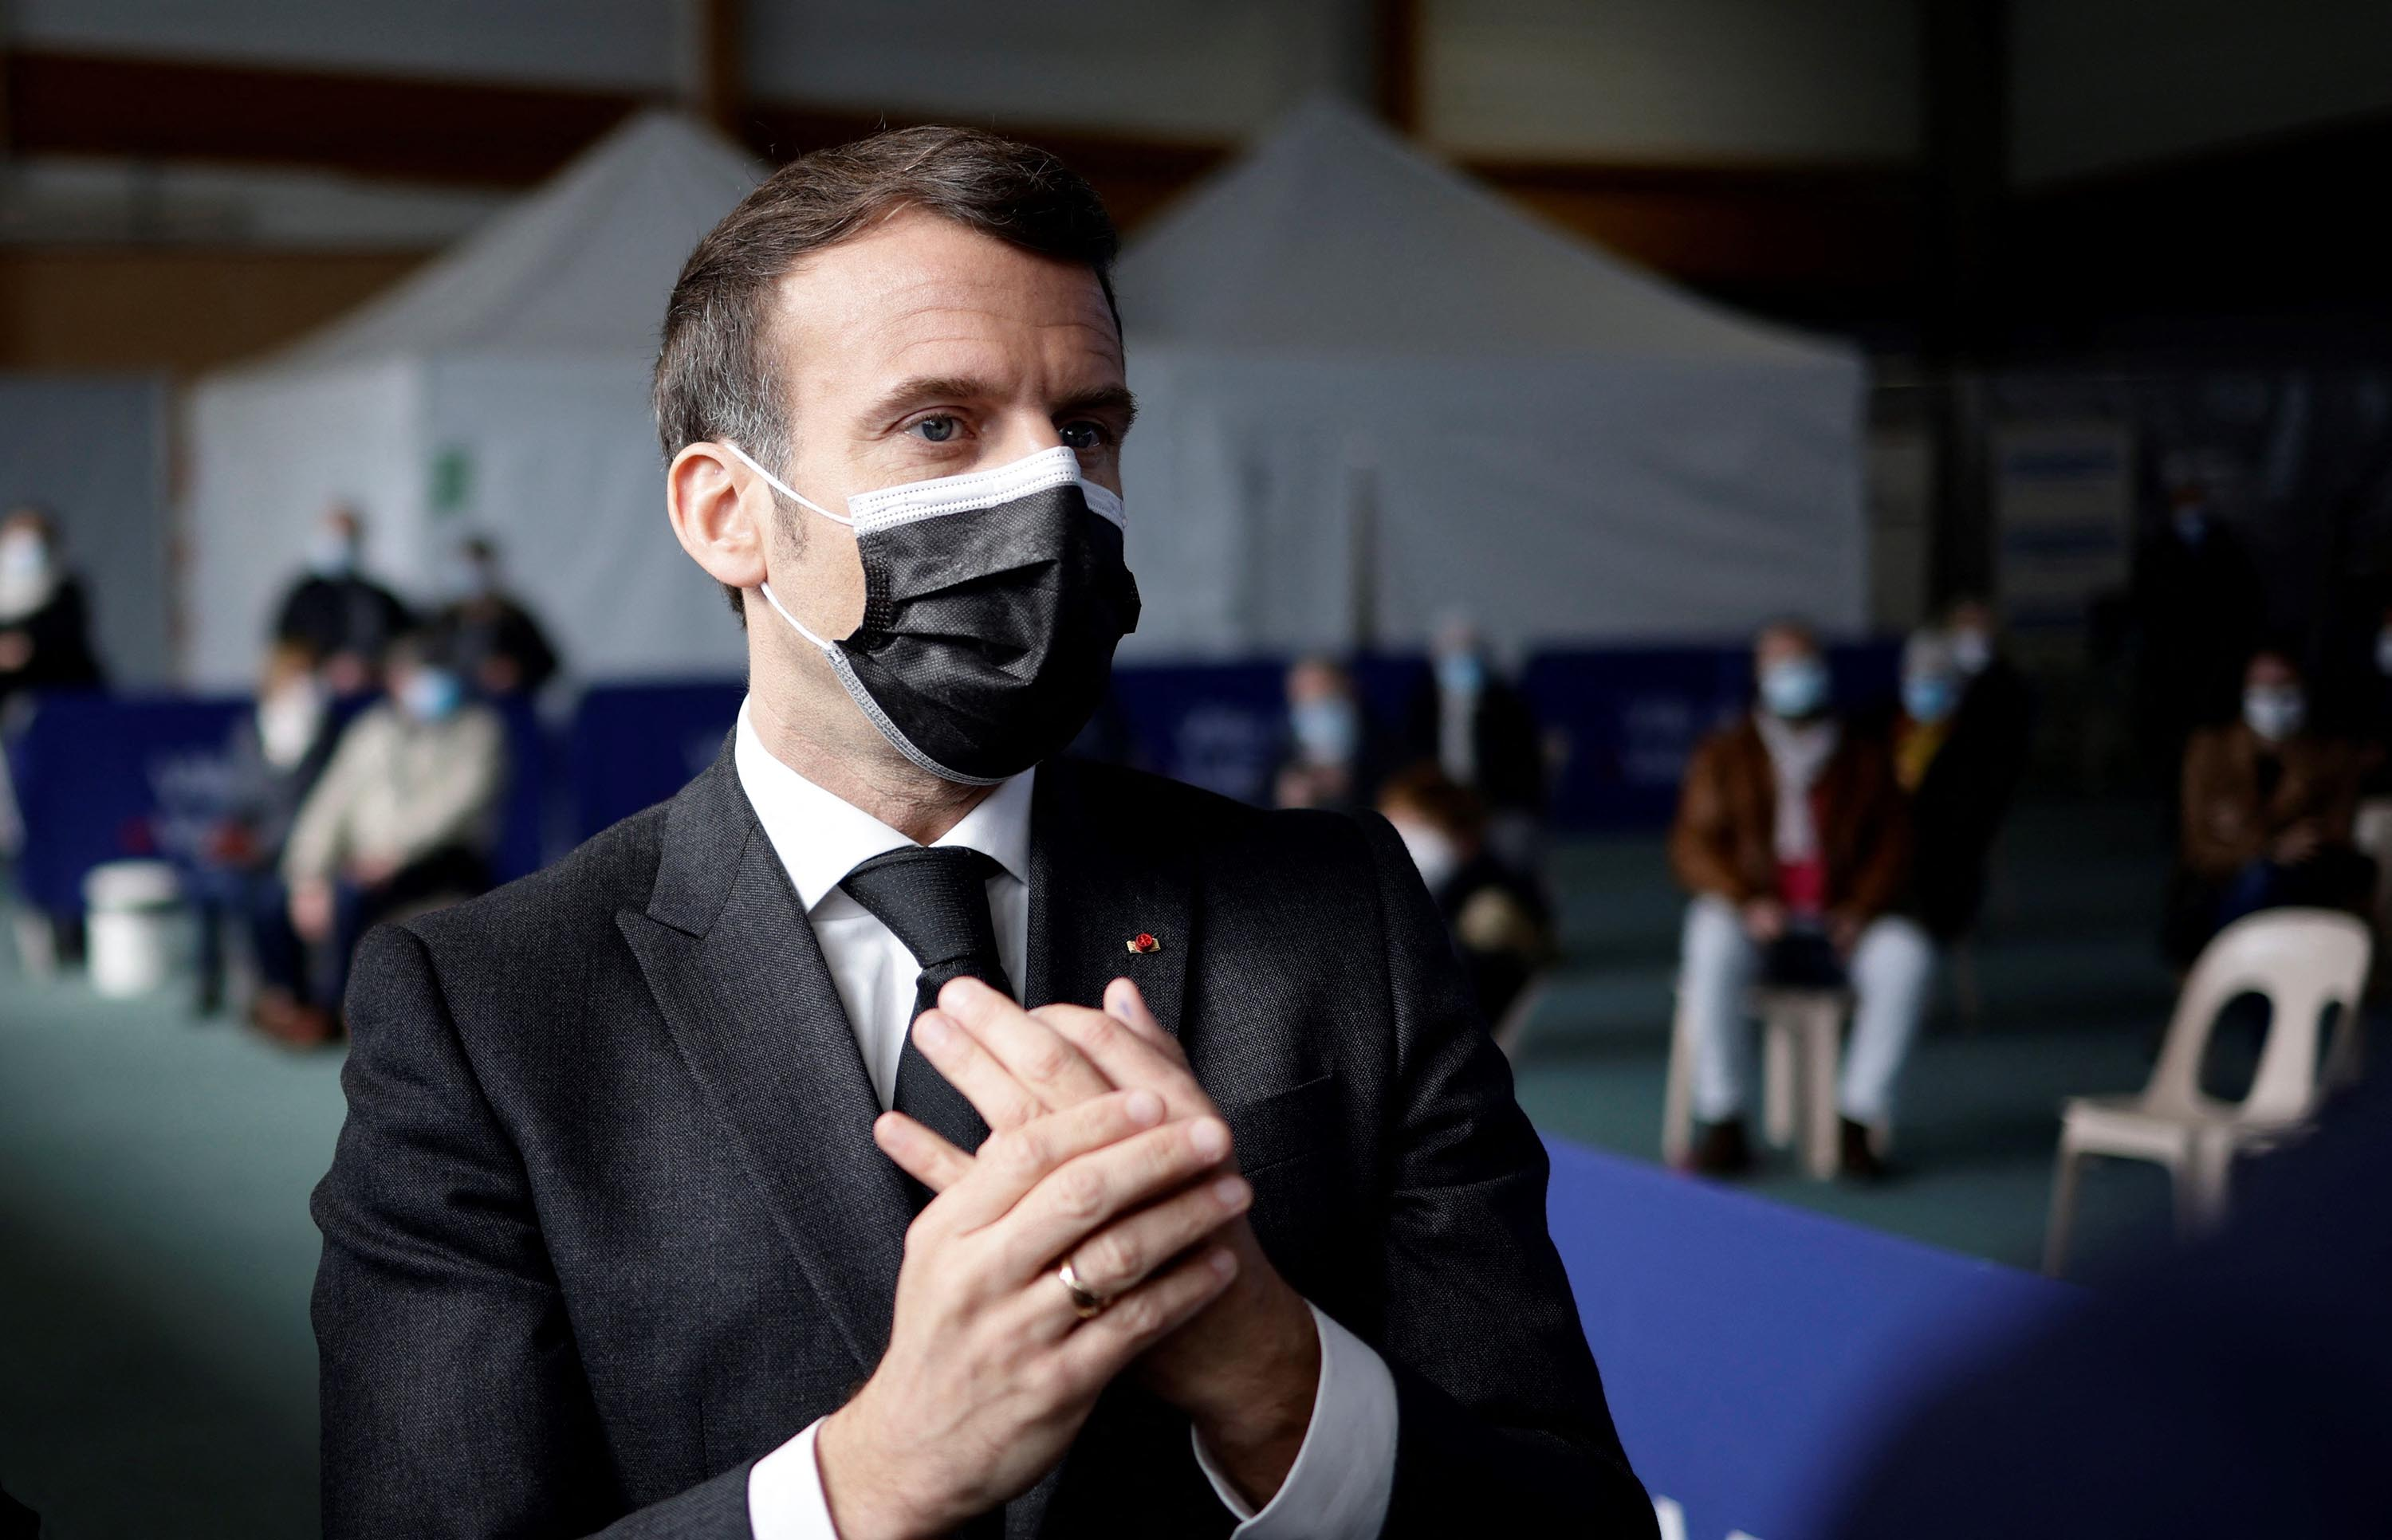 French President Emmanuel Macron visits a Covid-19 vaccination center in Valenciennes, France, on March 23.